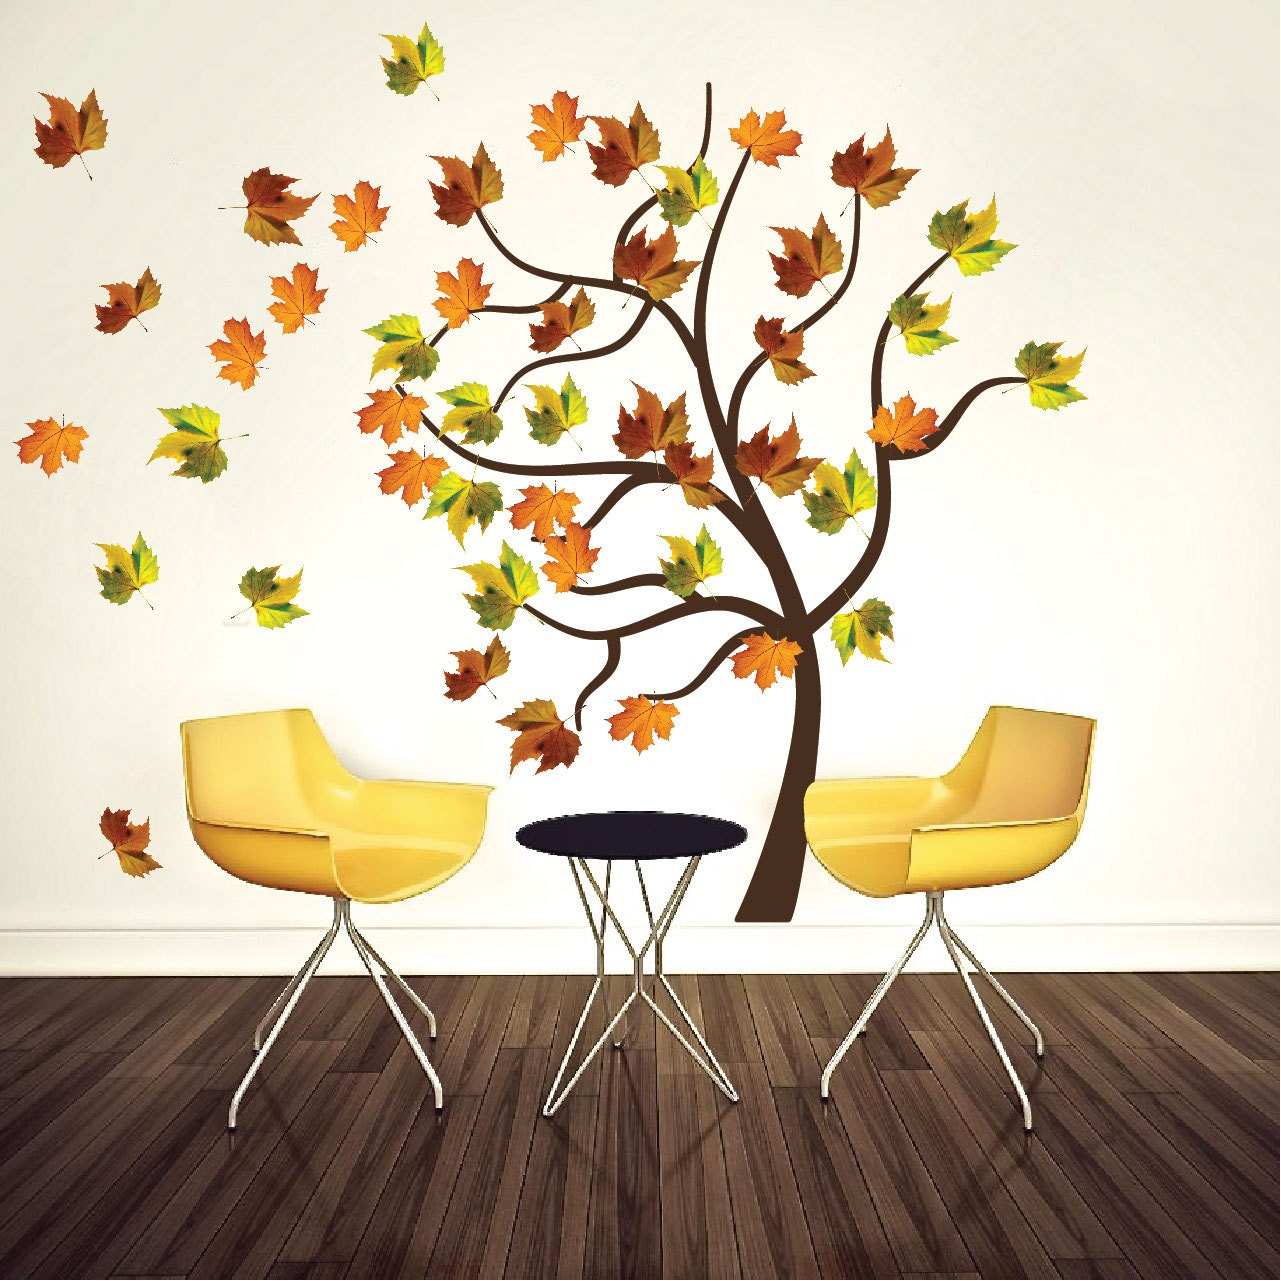 Autumn tree decal adjustable tree branch wall decal stickers zoom amipublicfo Gallery